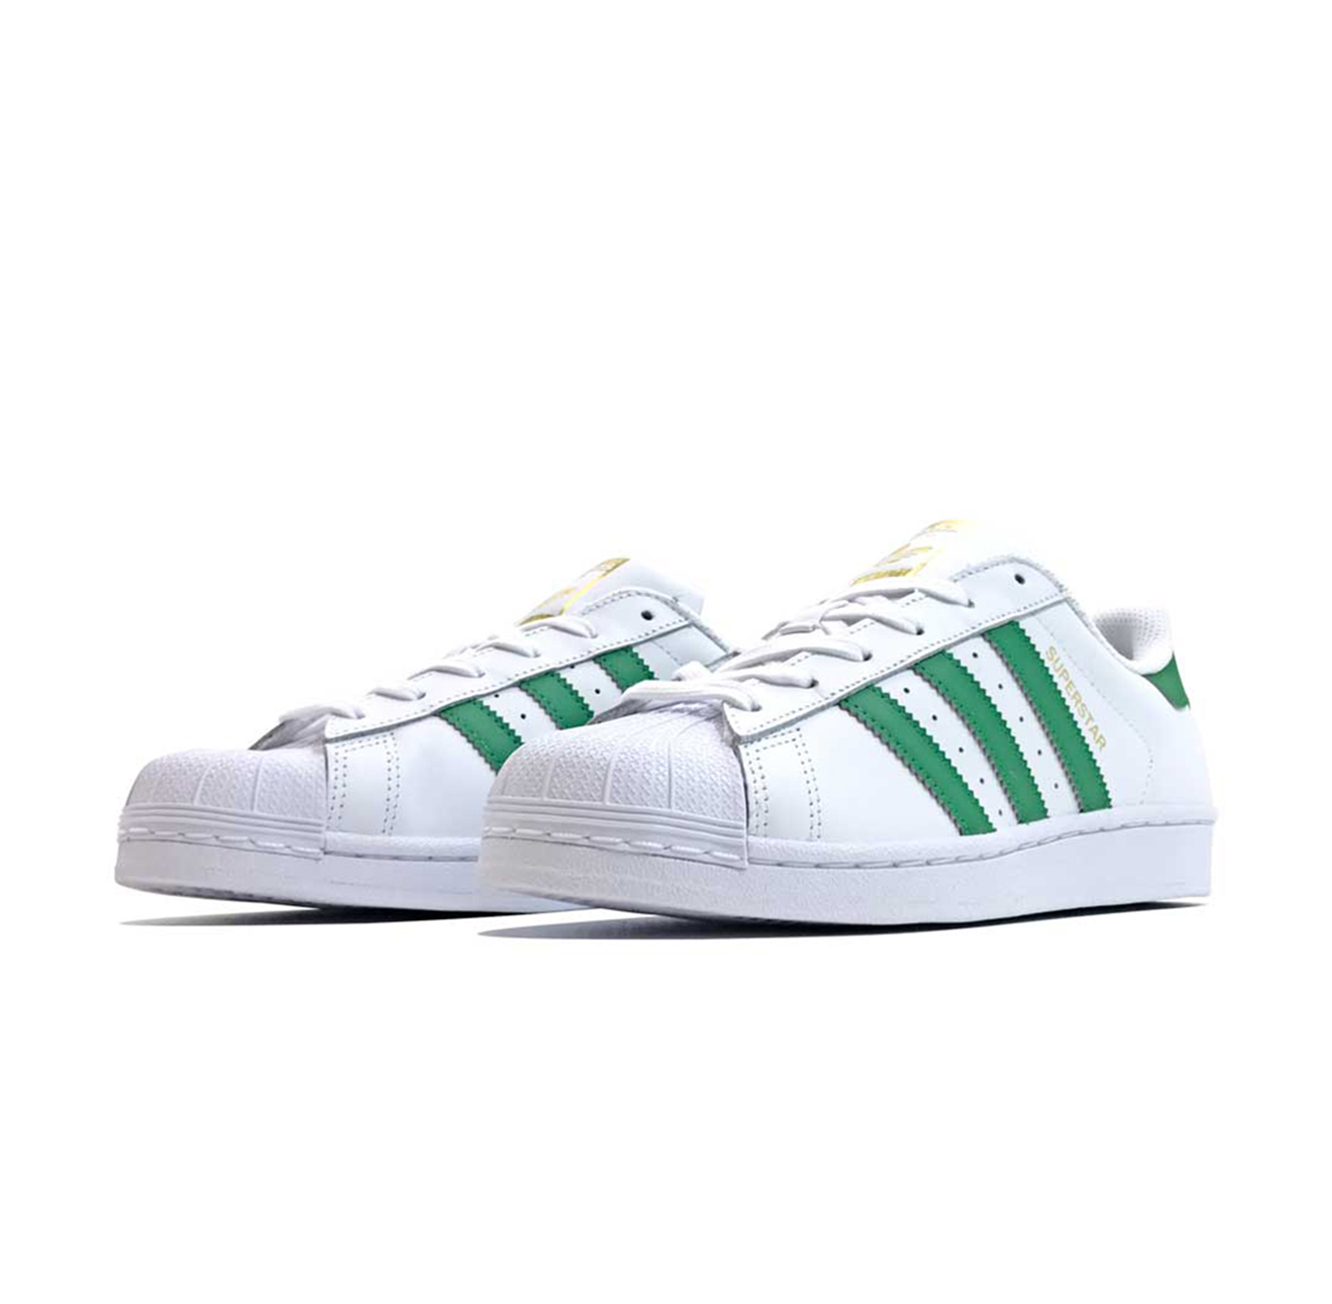 half off 91b39 30dcc נעליים לגברים ADIDAS MAN'S ORIGINAL SUPERSTAR FOUNDATION ...